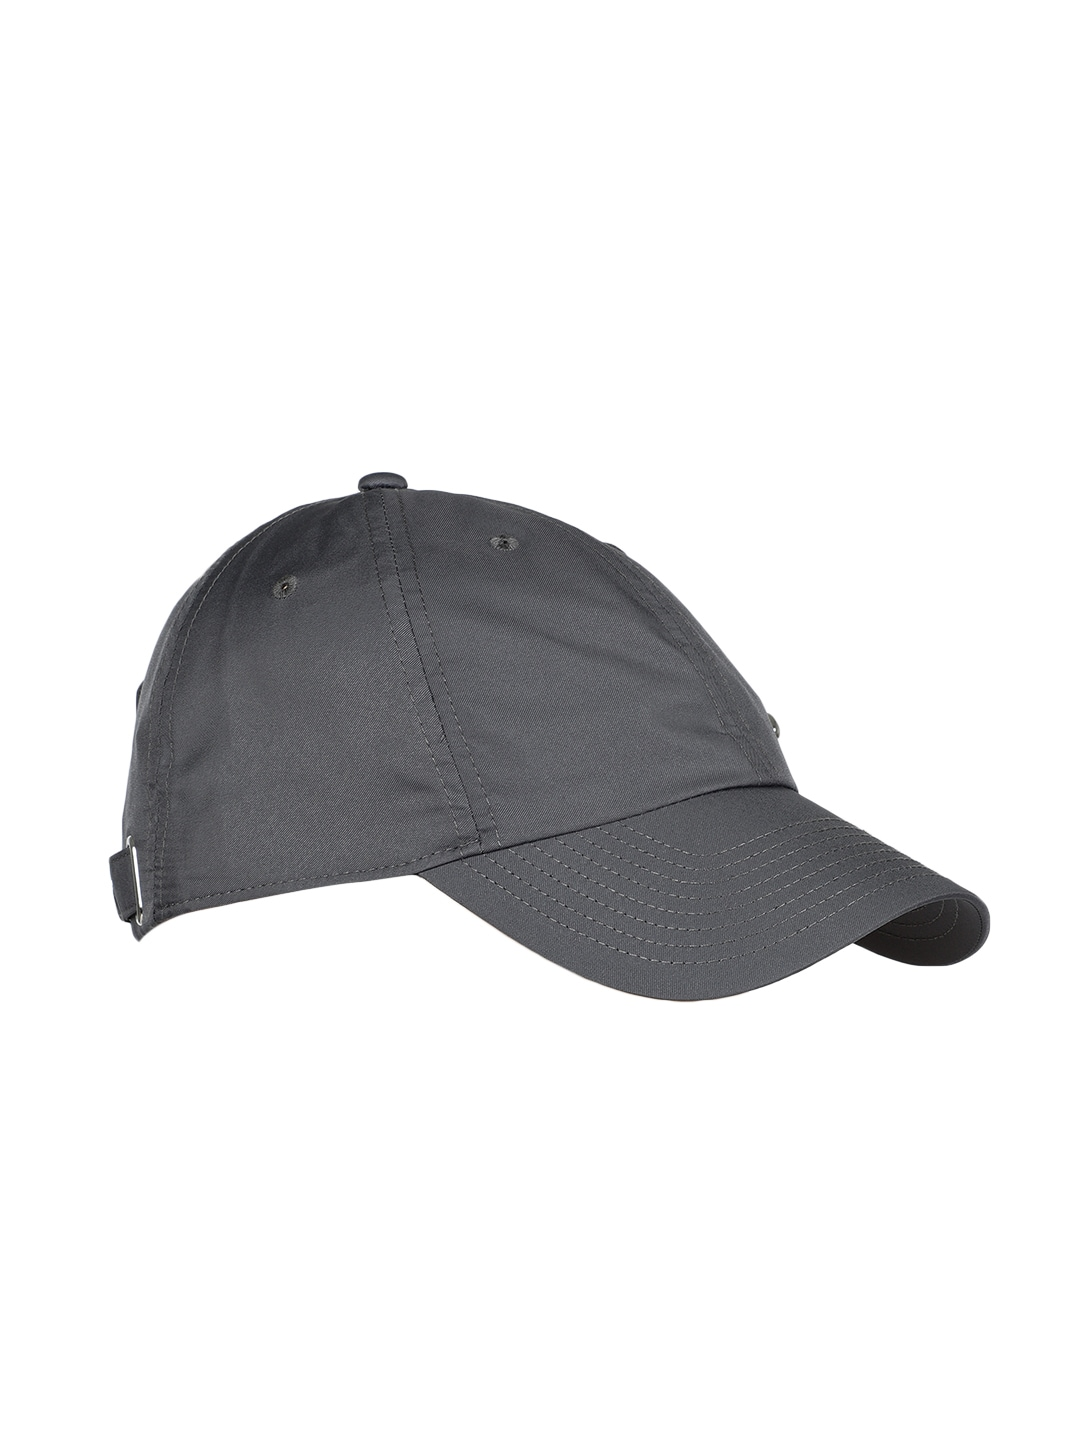 6726919a5e4 Hats   Caps For Men - Shop Mens Caps   Hats Online at best price ...